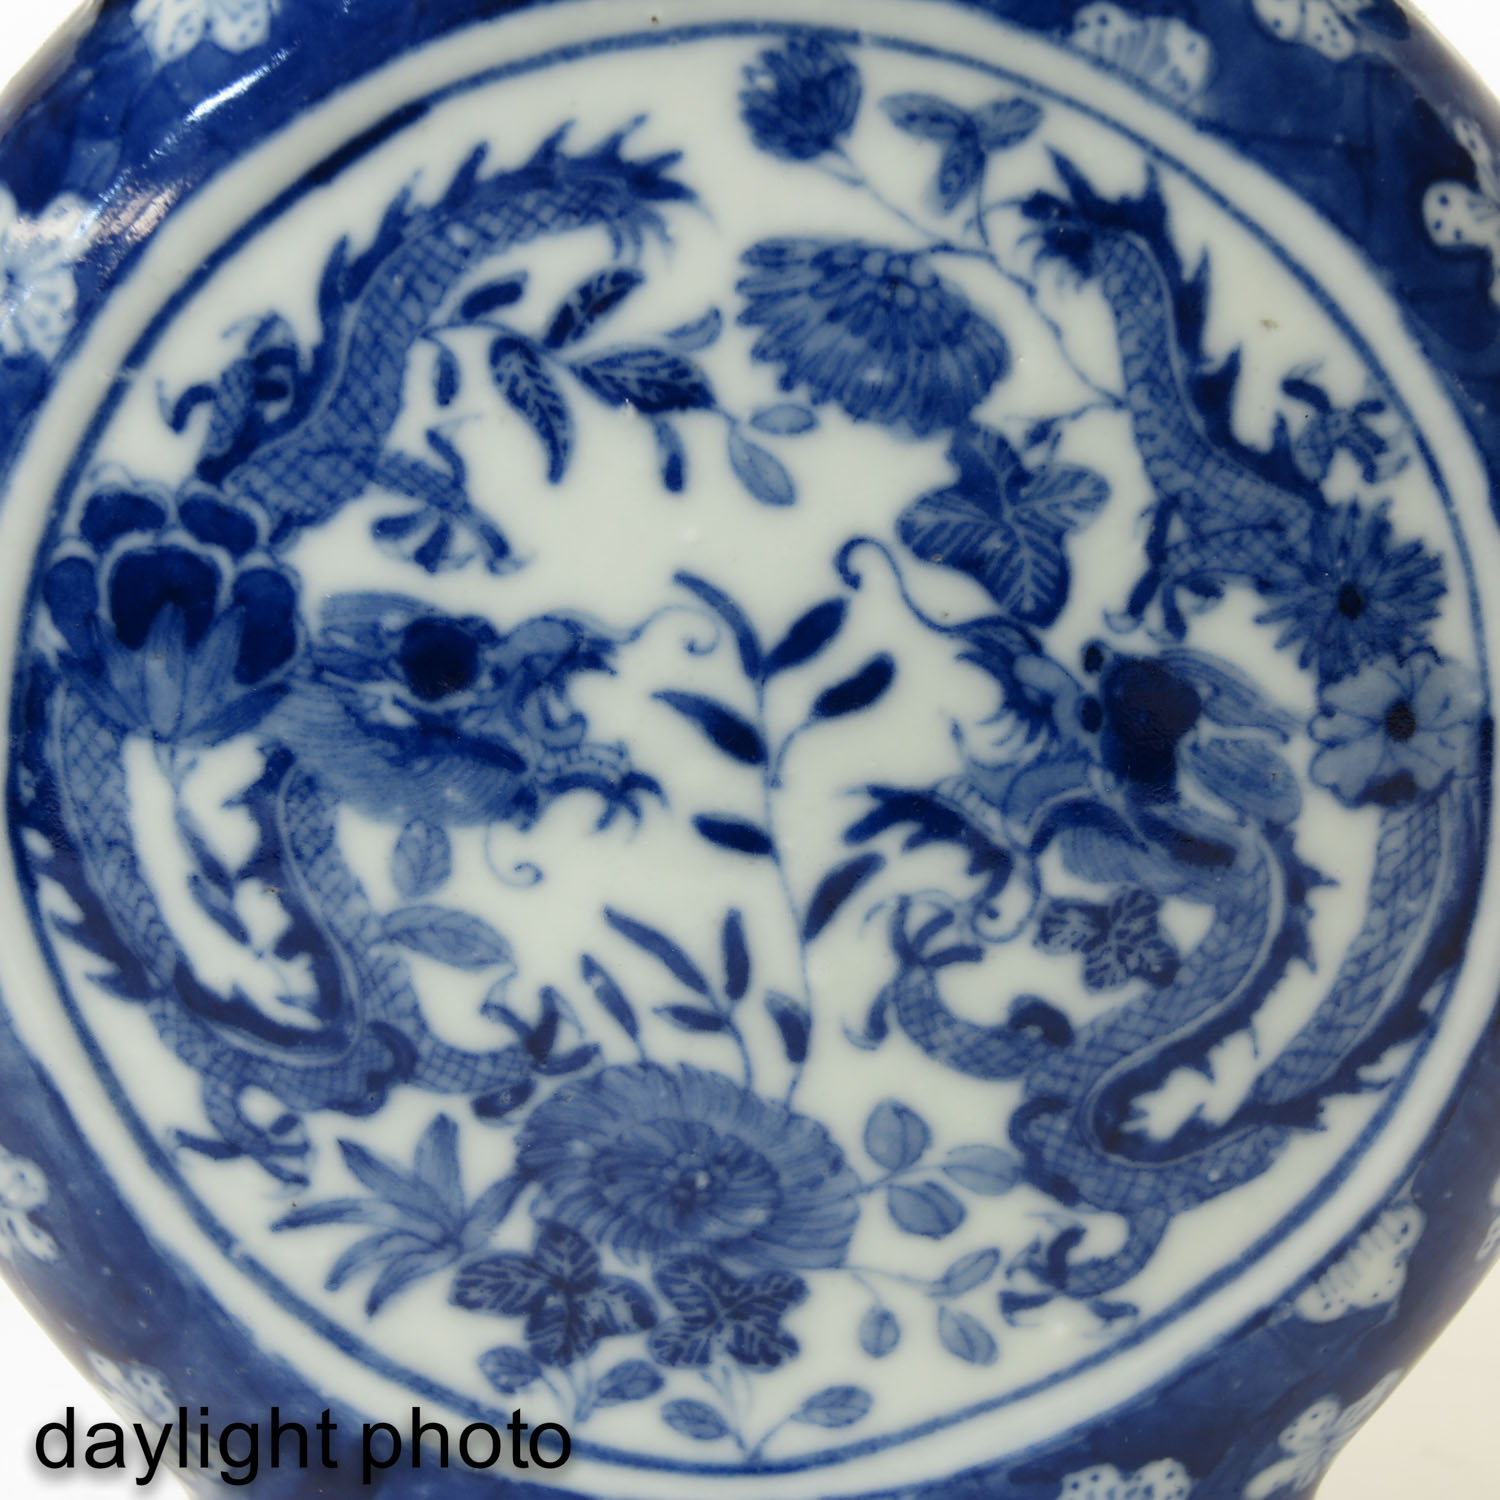 A Blue and White Moon Bottle - Image 10 of 10